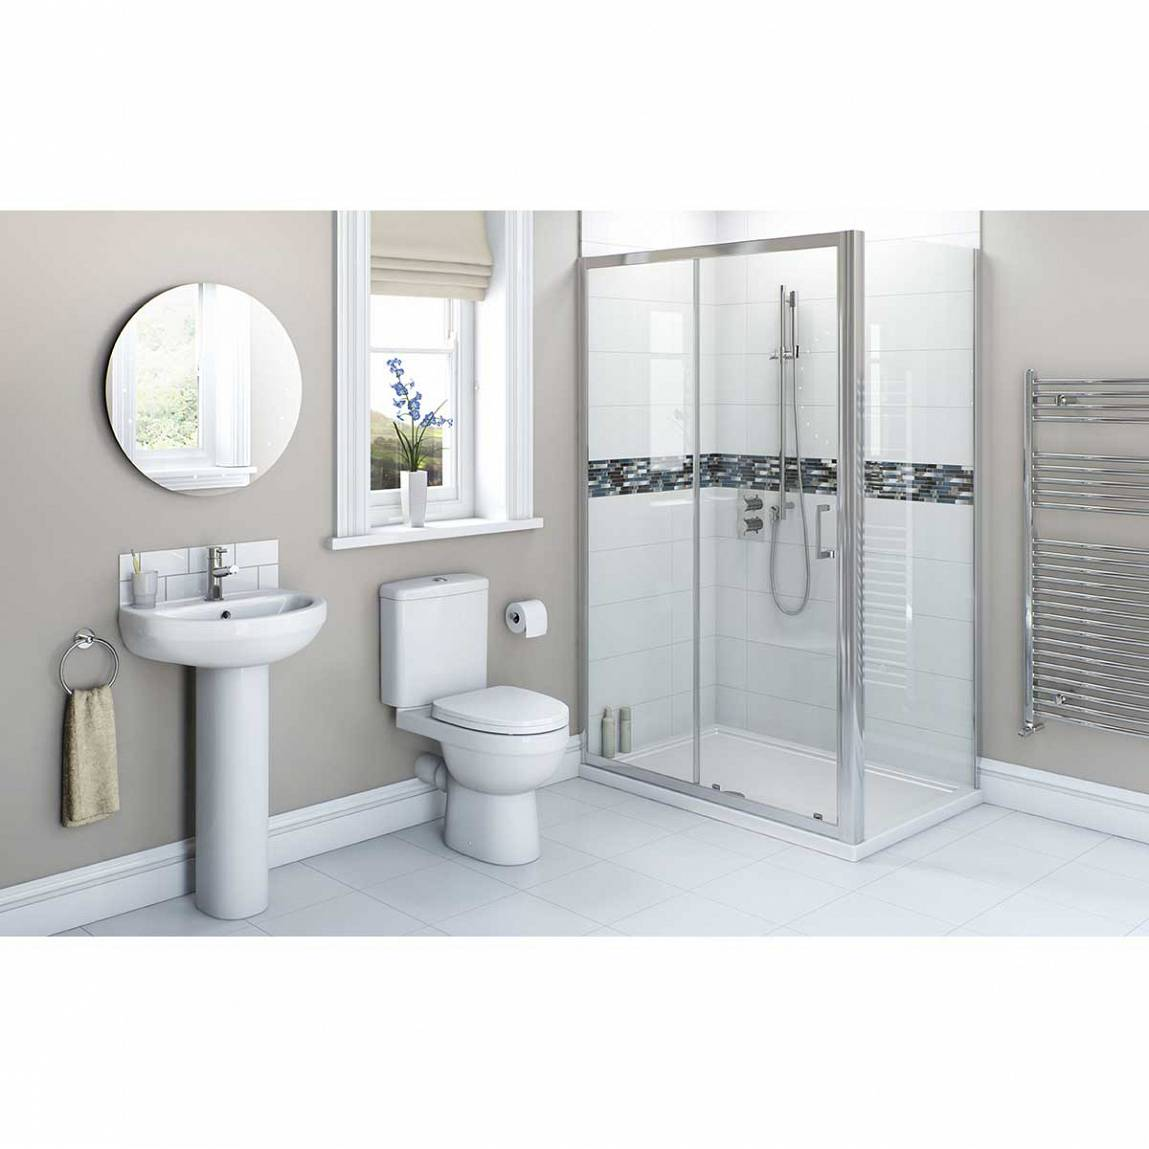 Image of Energy Bathroom set with 1000x900 Sliding Enclosure & Tray